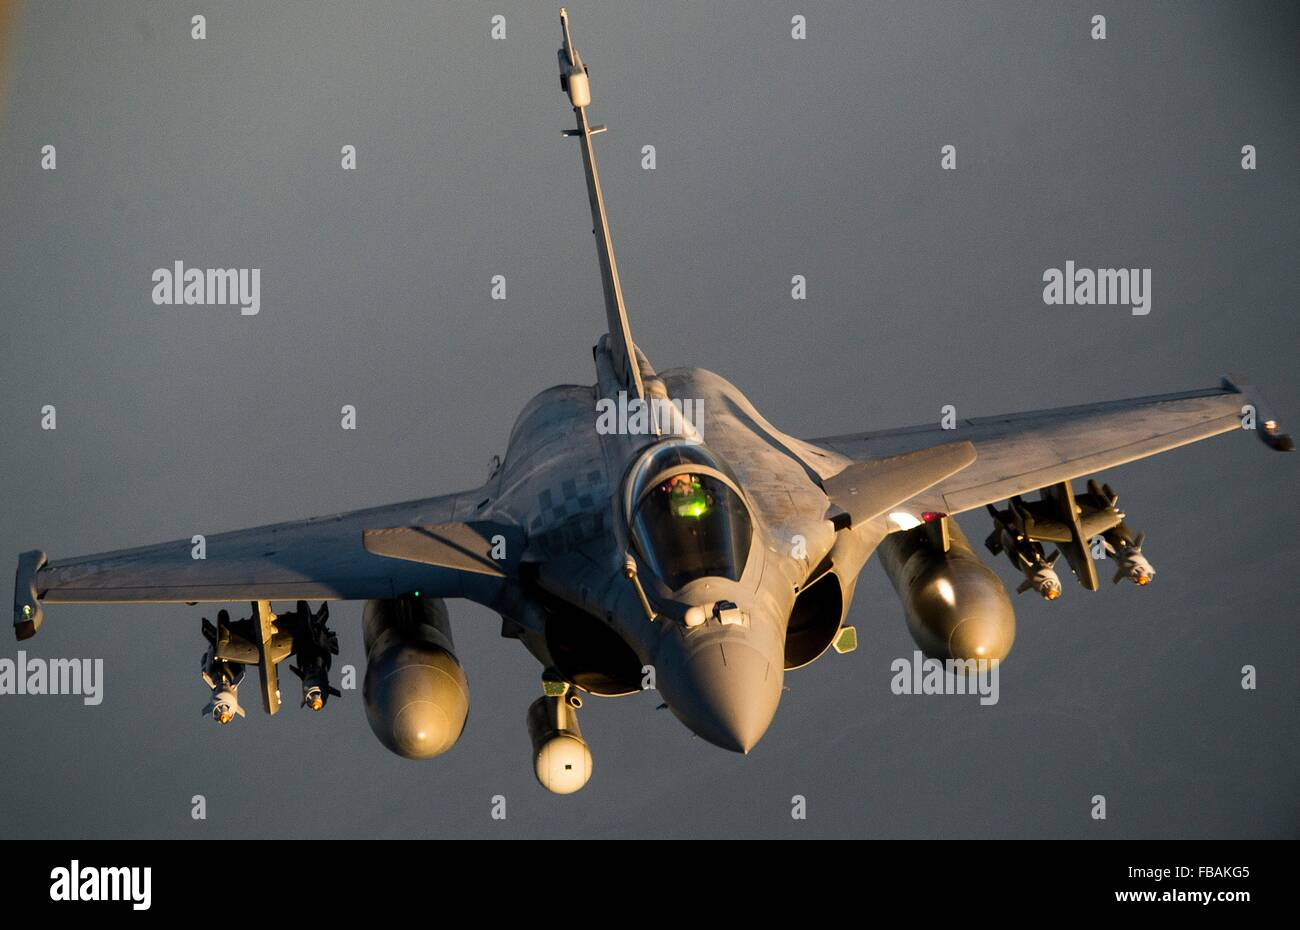 A French F-2 Rafale fighter jet during a mission over Iraq in support of Operation Inherent Resolve January 8, 2016. - Stock Image